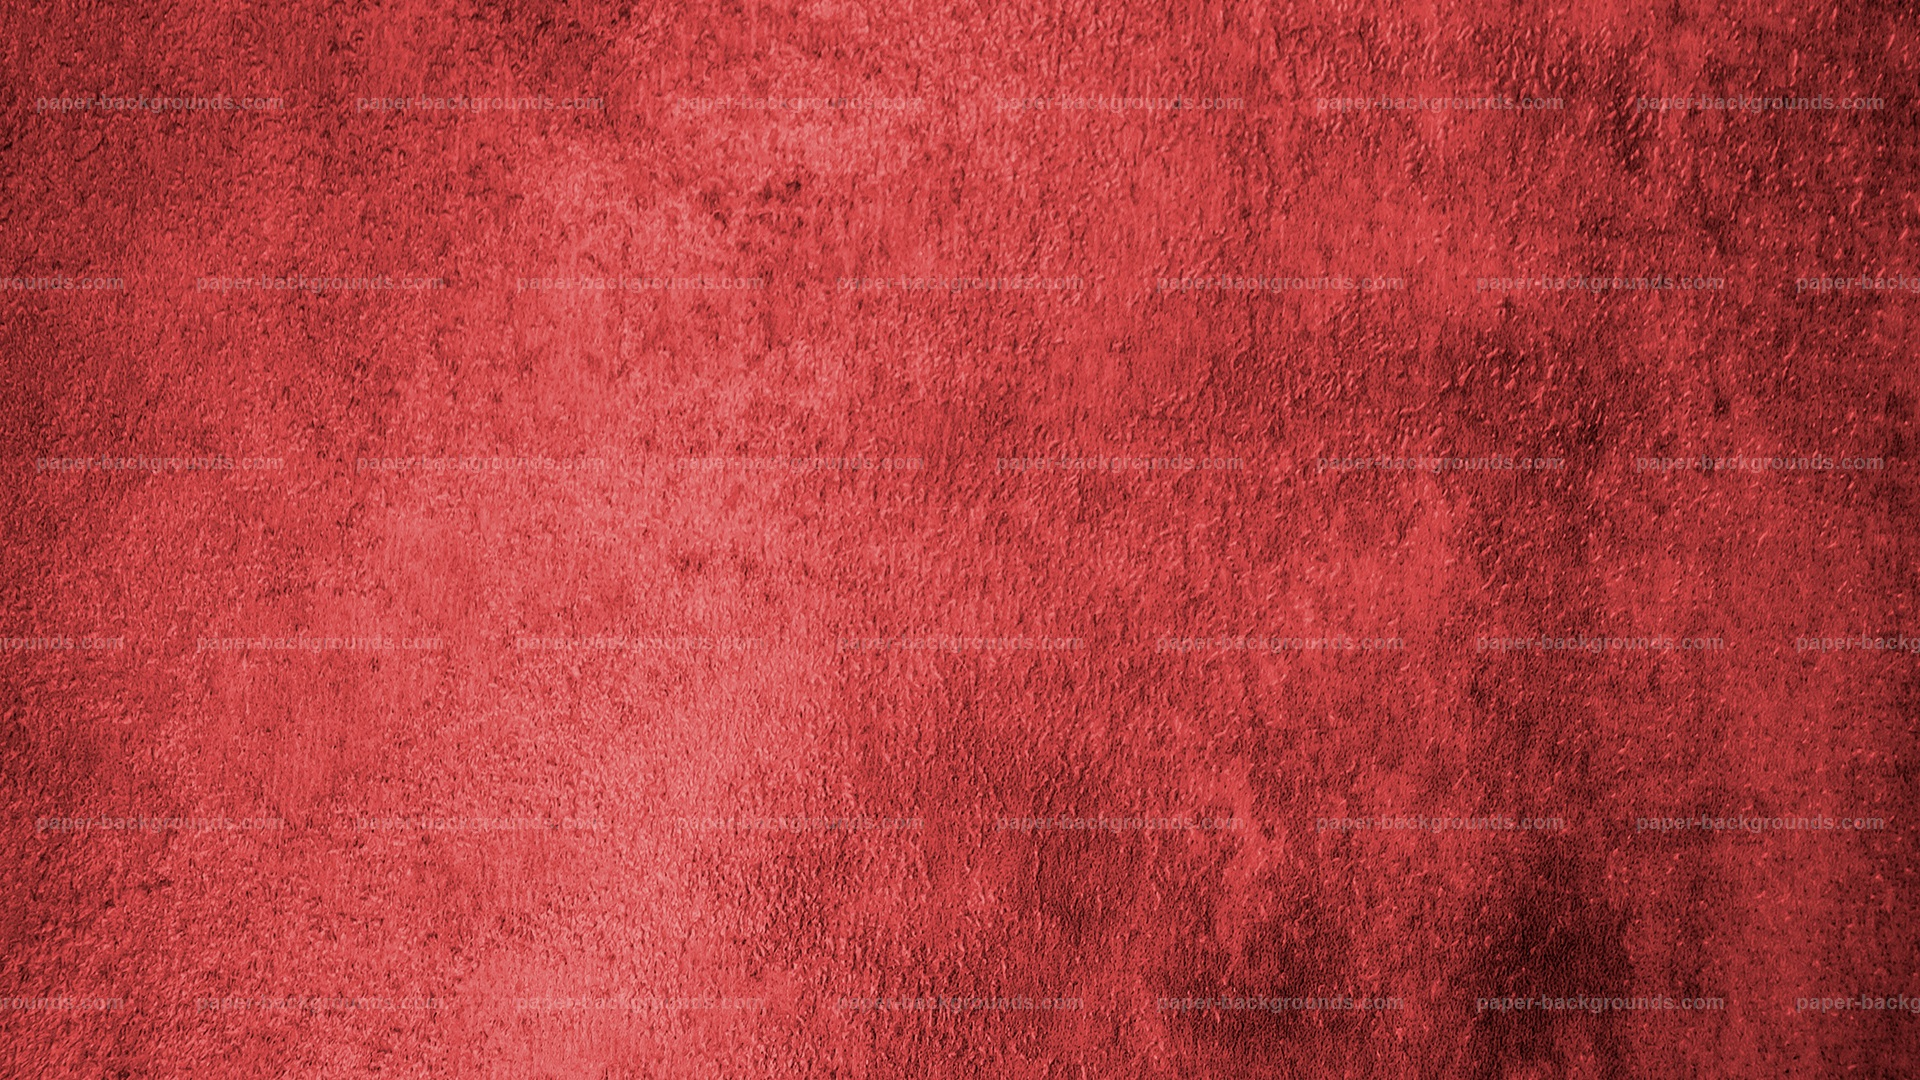 Grunge Red Background Texture HD